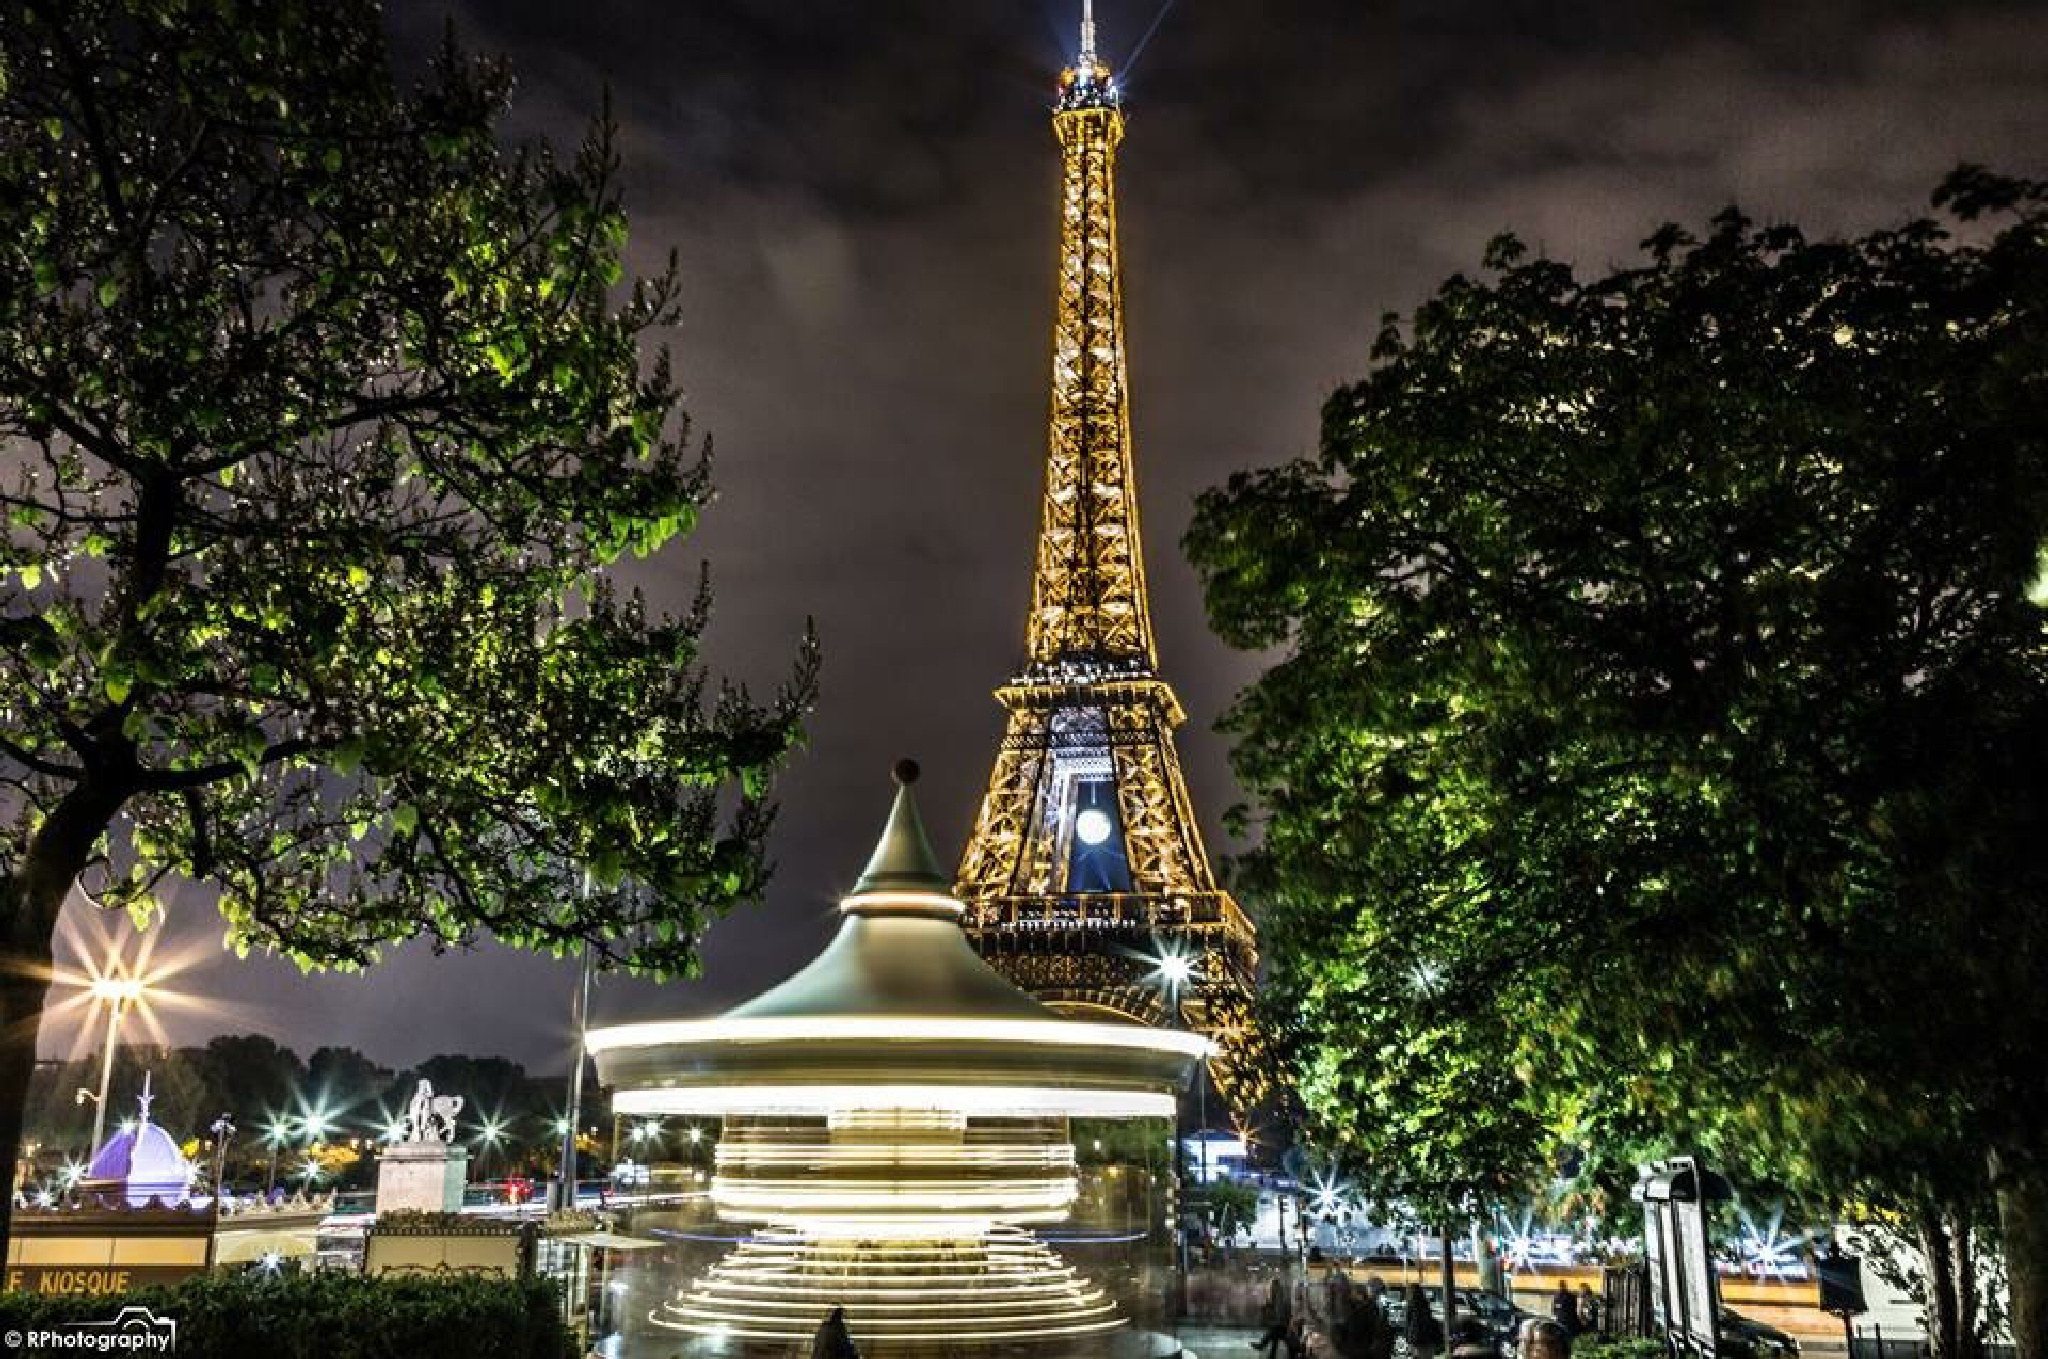 Eiffel tower HDR by RPhotography